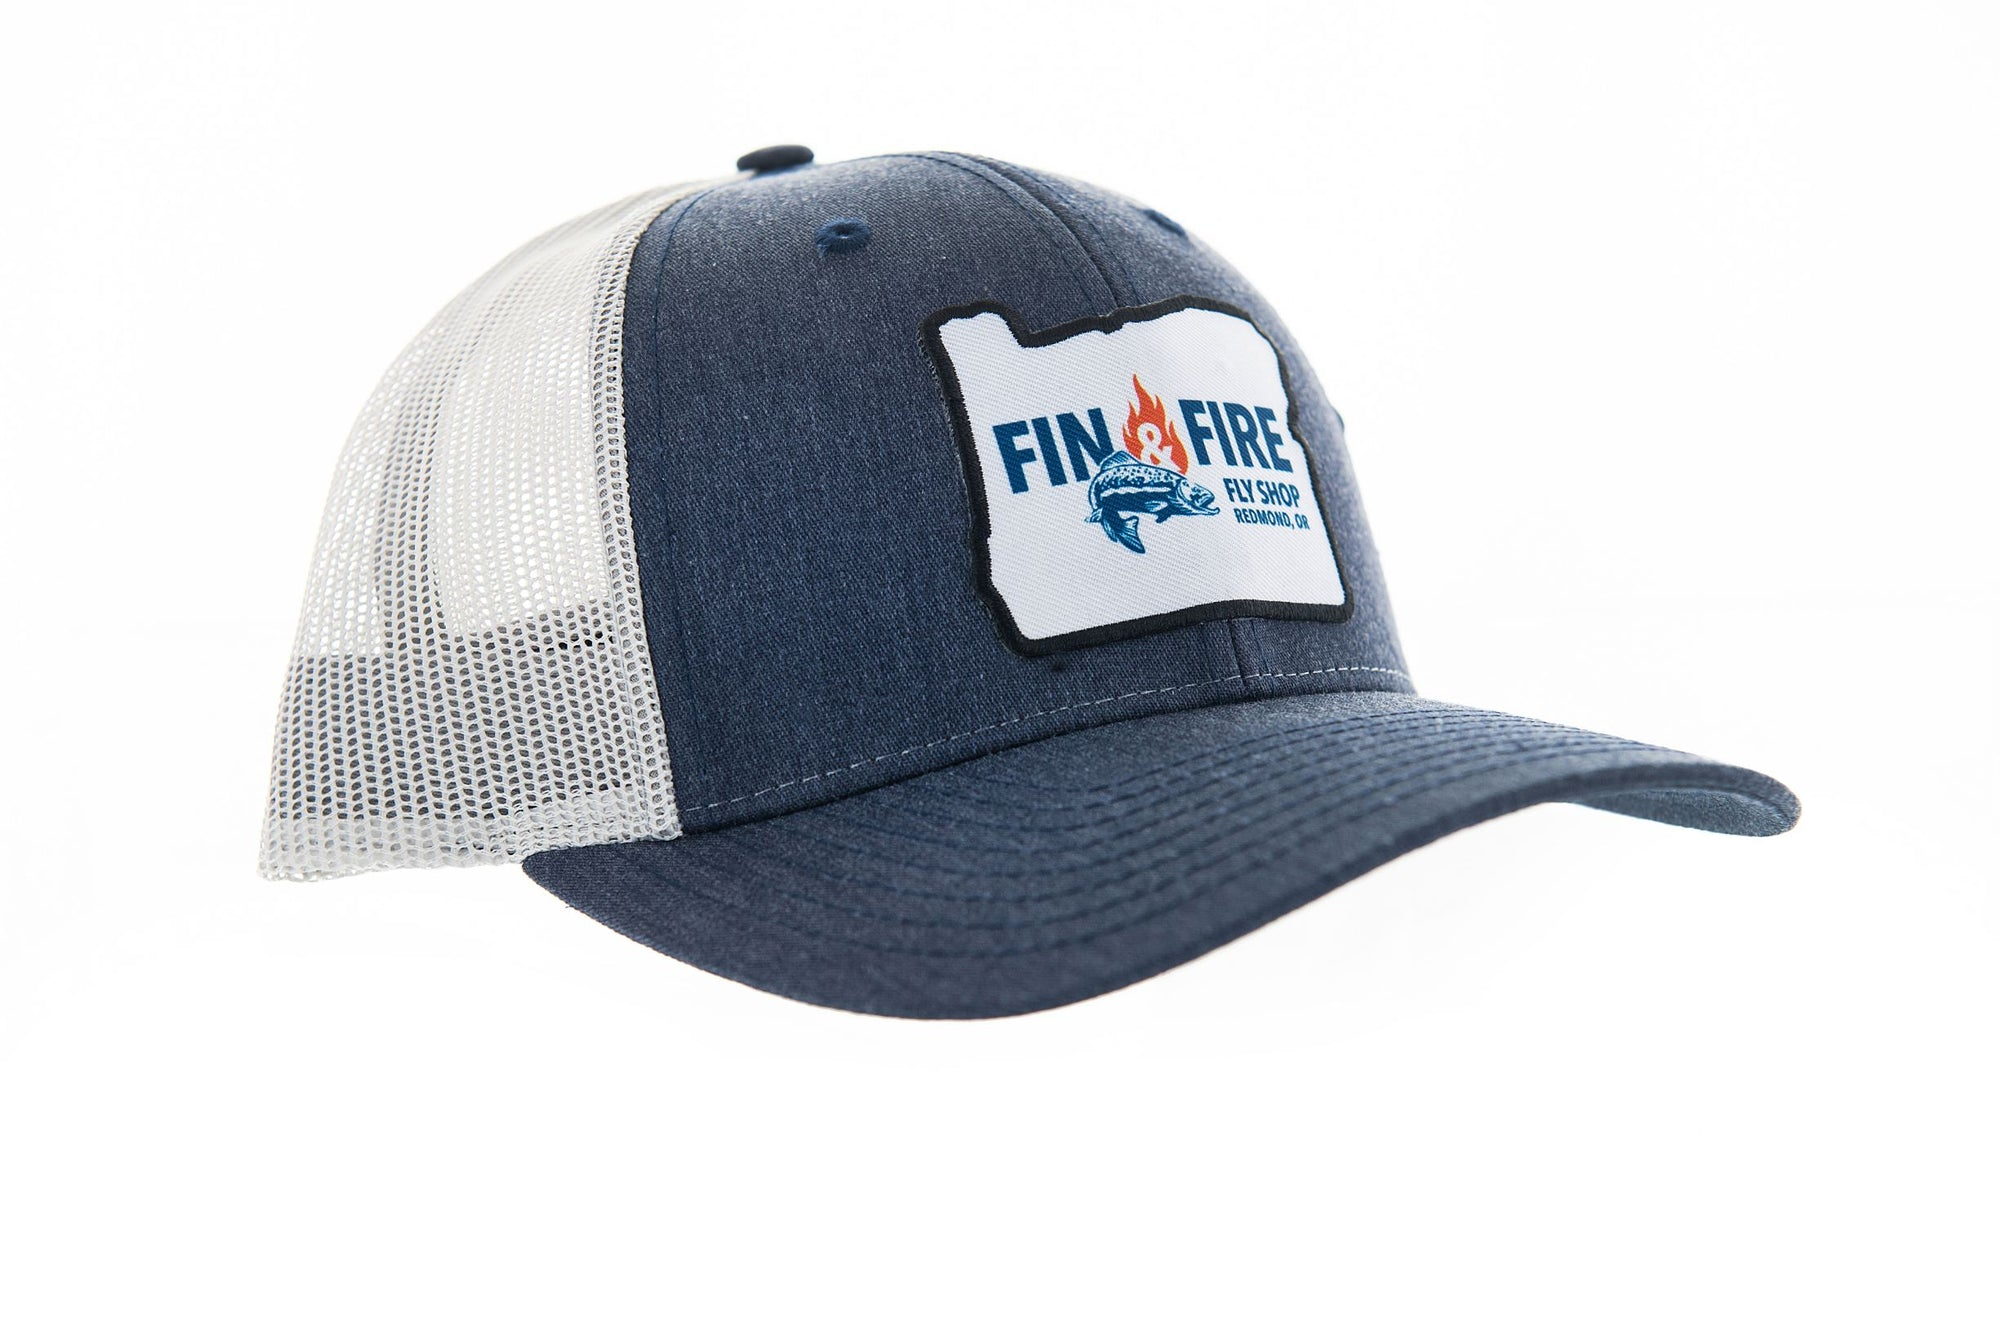 Fin & Fire Logo Hat: Navy Heather/Grey